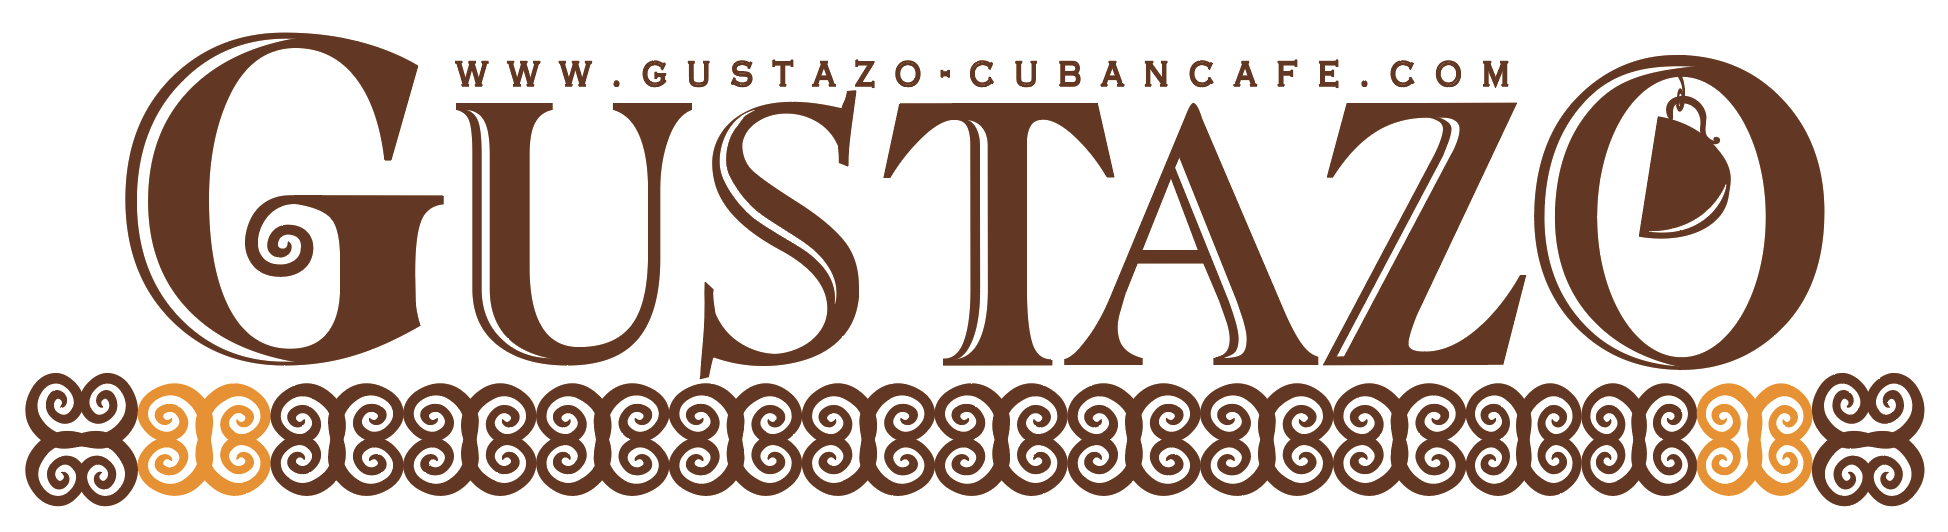 Gustazo Cuban Restaurant and Cafe